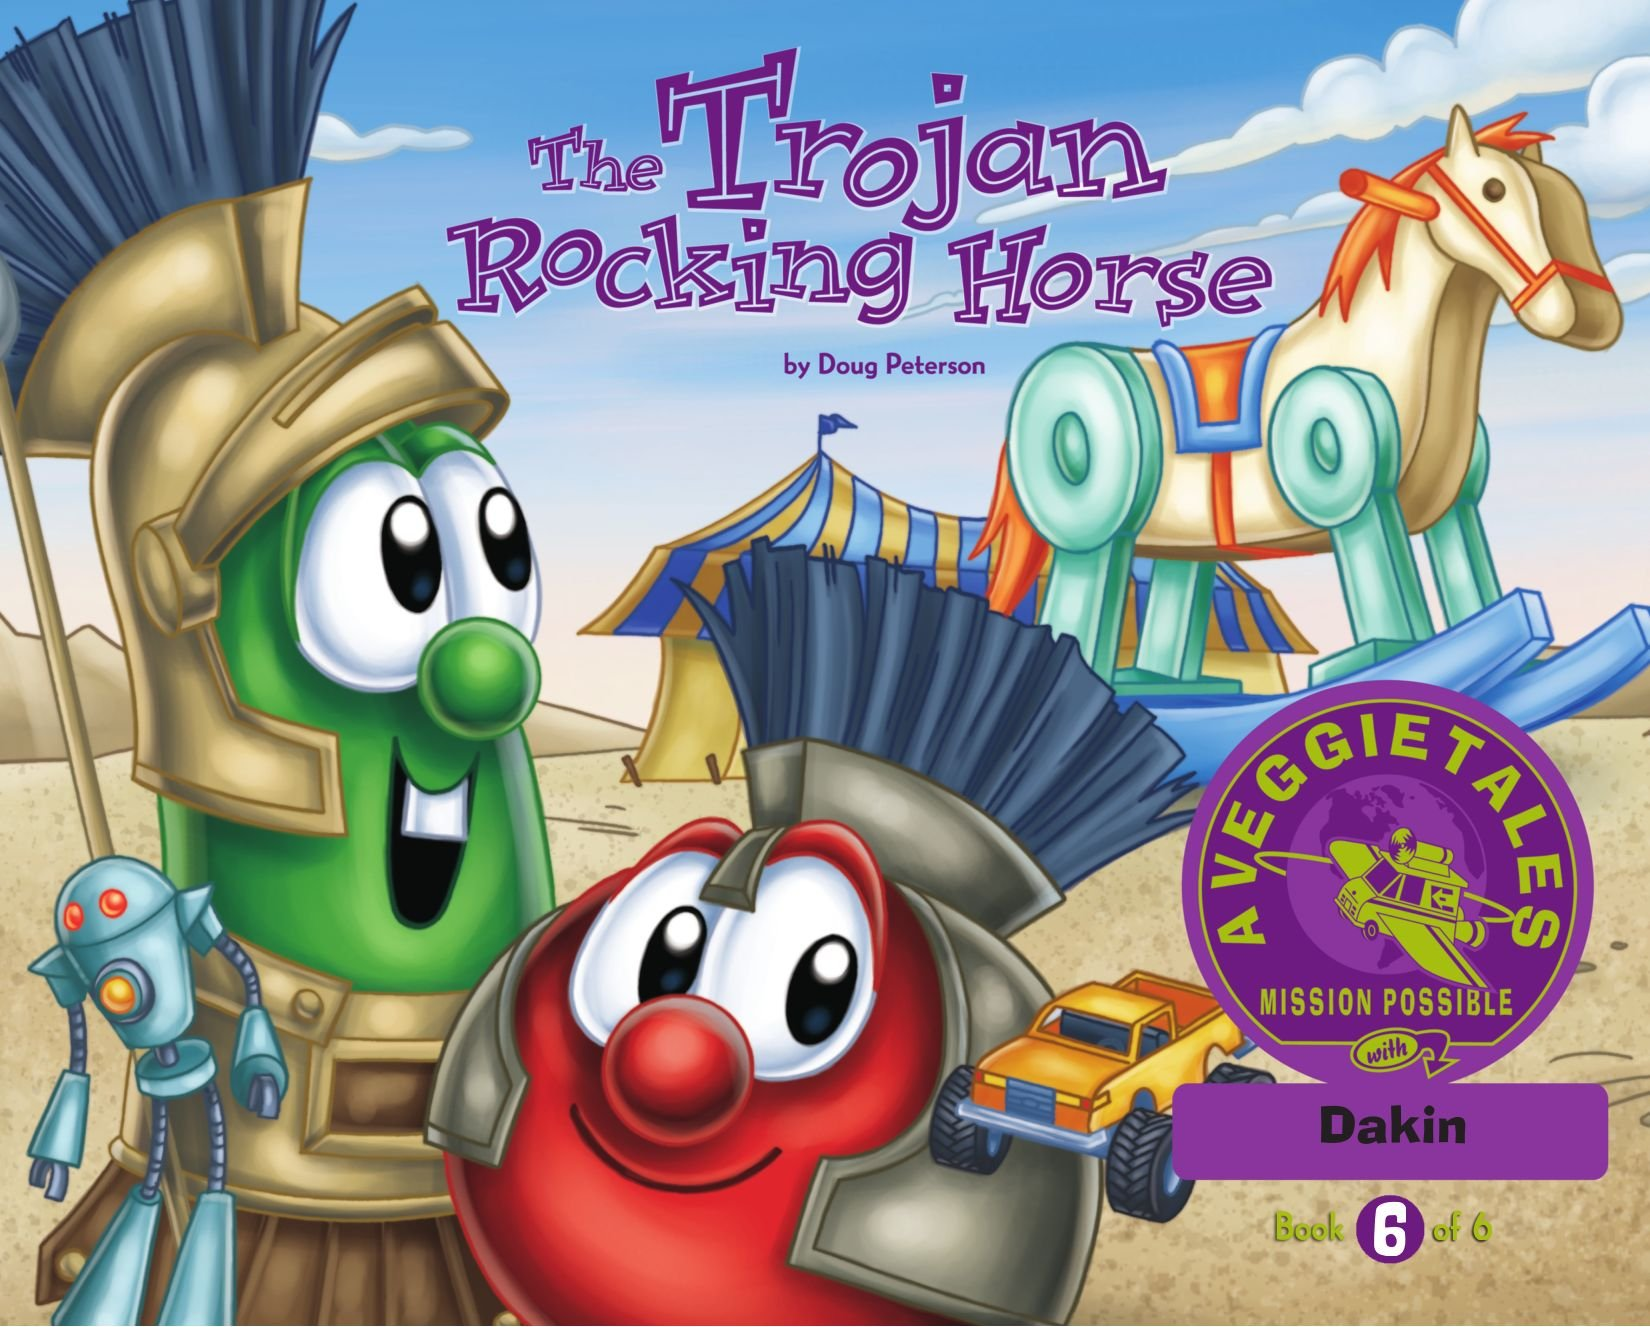 Download The Trojan Rocking Horse - VeggieTales Mission Possible Adventure Series #6: Personalized for Dakin (Boy) pdf